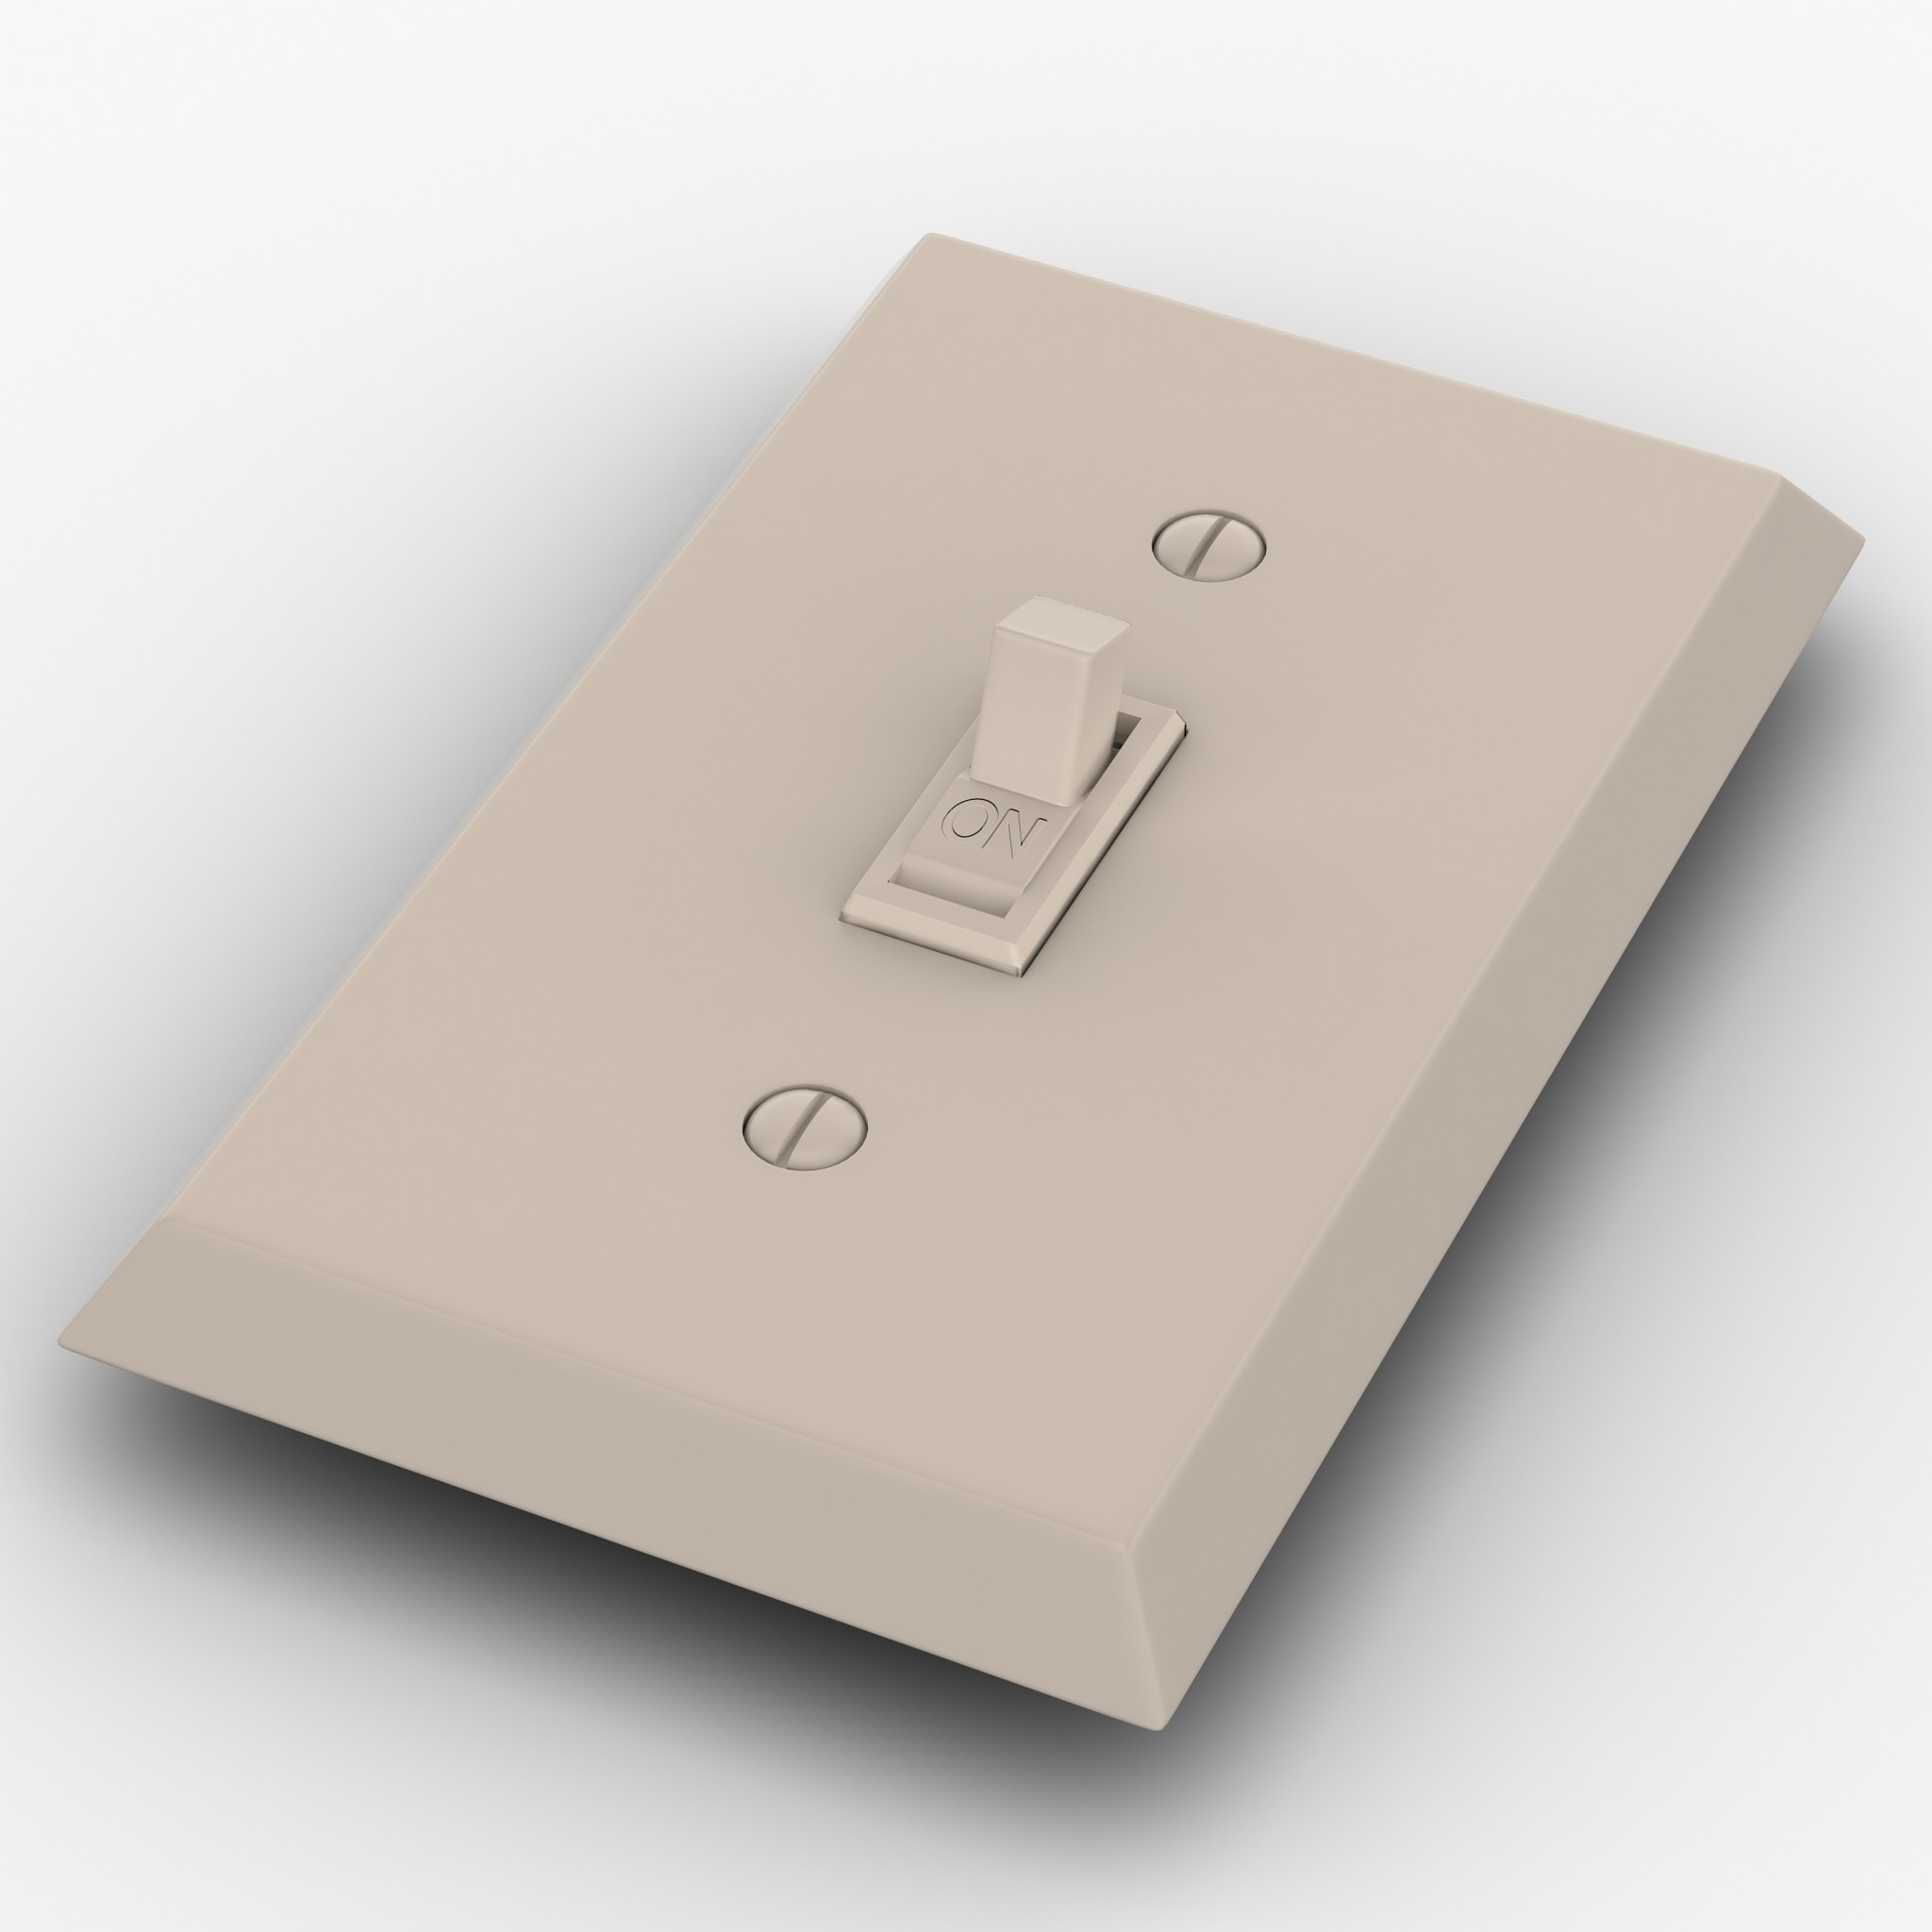 US Light Switch_13.jpg